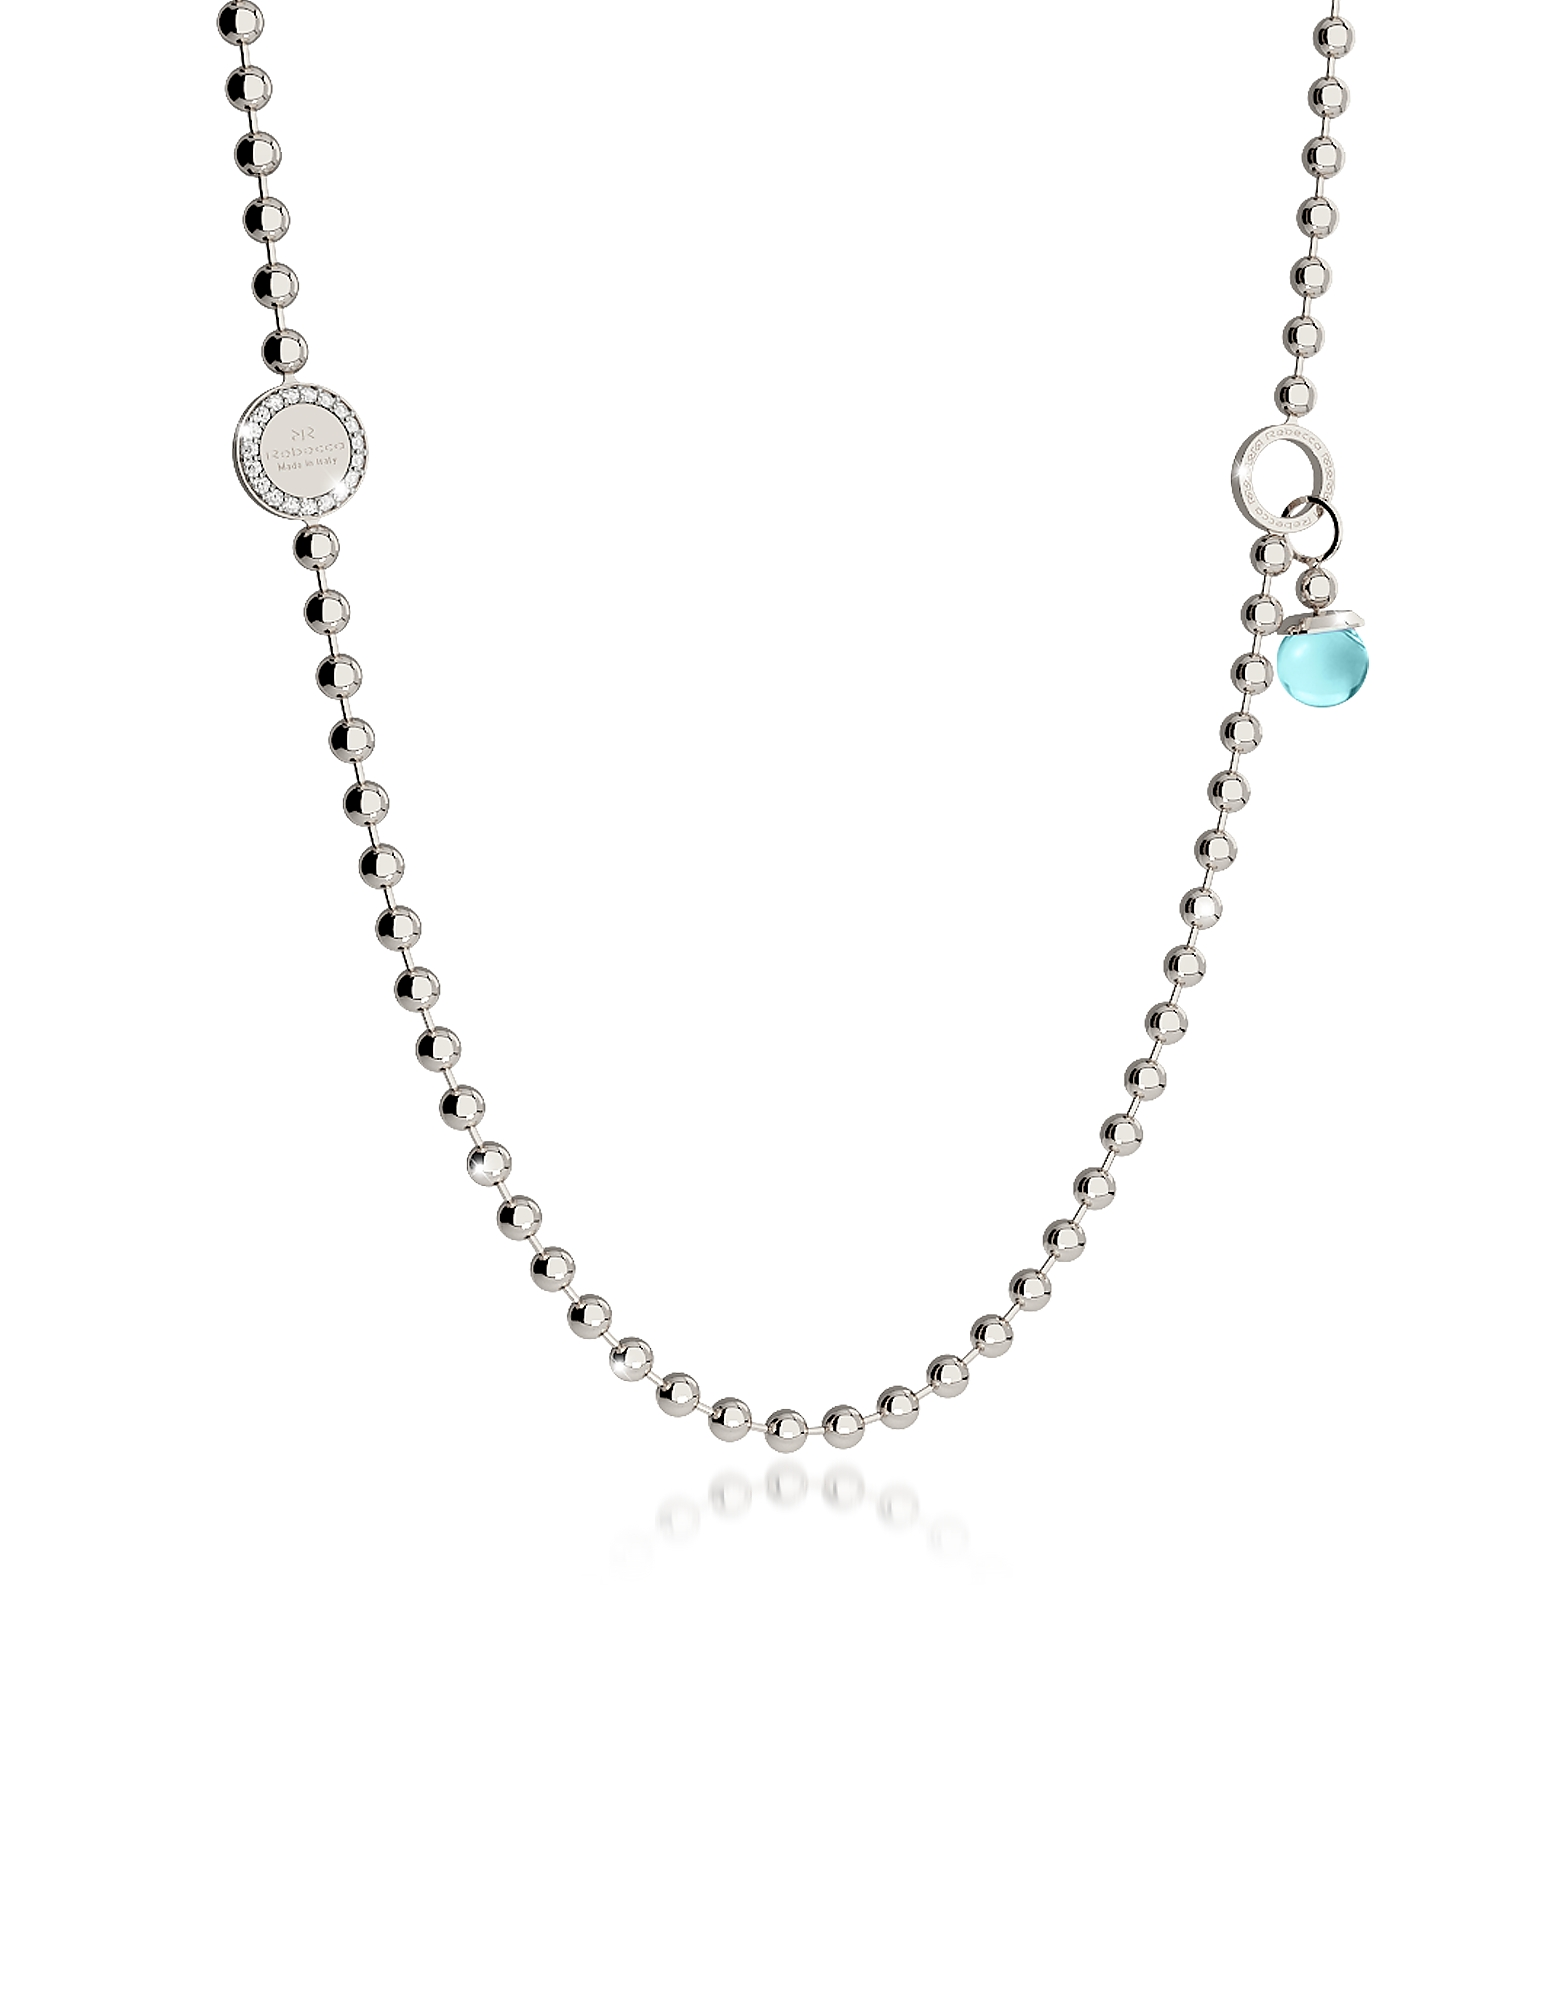 Boulevard Stone Rhodium Over Bronze Necklace w/Double Charms